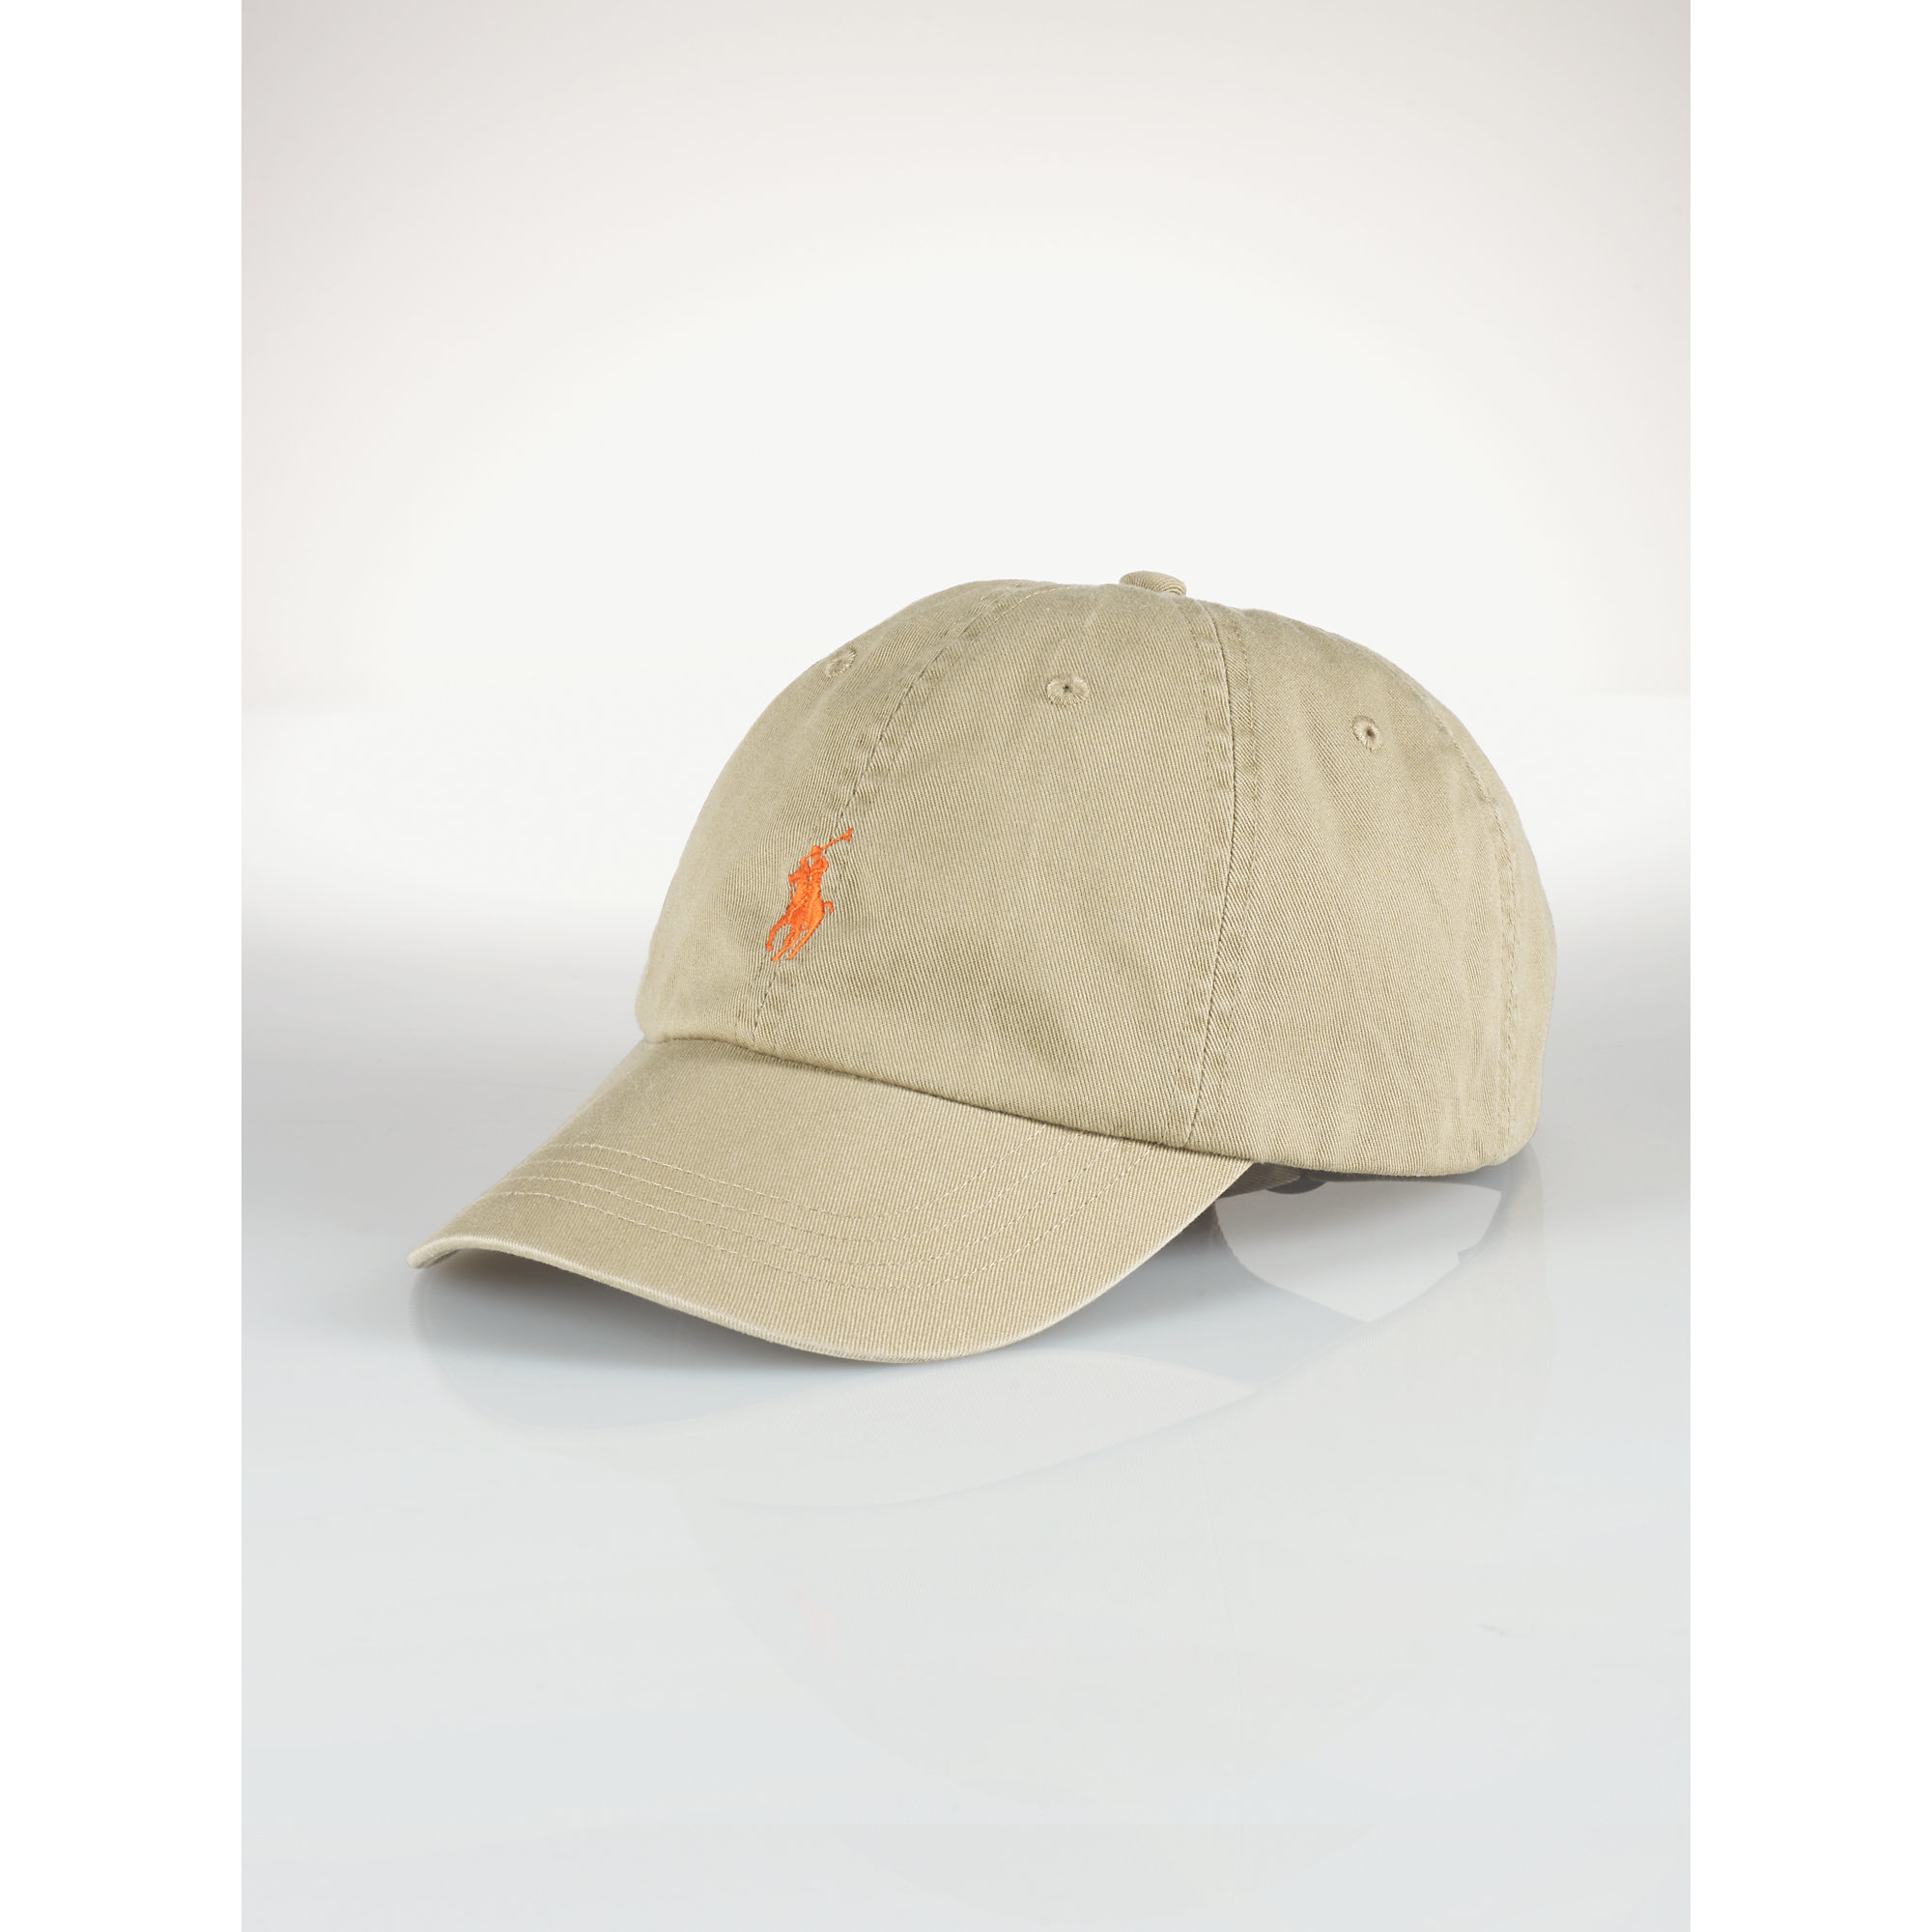 polo ralph lauren cotton chino baseball cap in green for men military. Black Bedroom Furniture Sets. Home Design Ideas